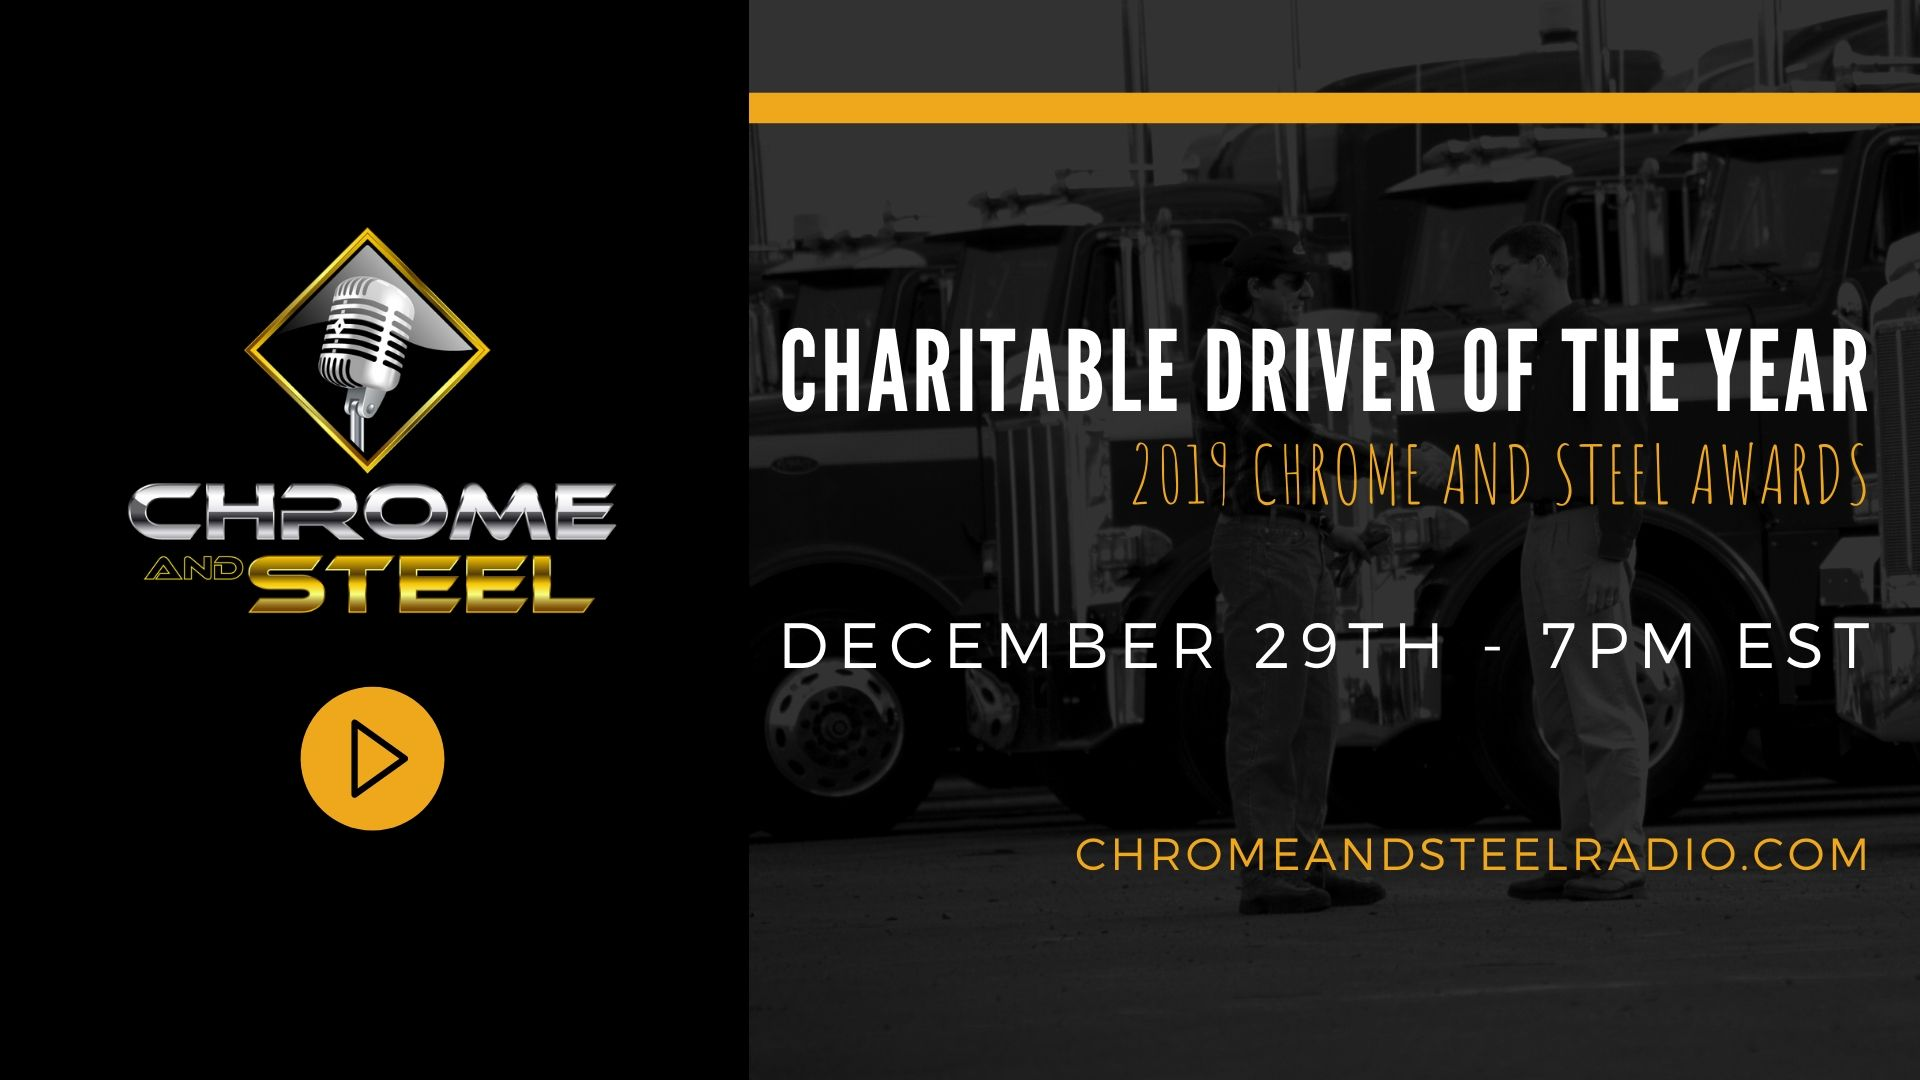 Charitable Driver of the Year